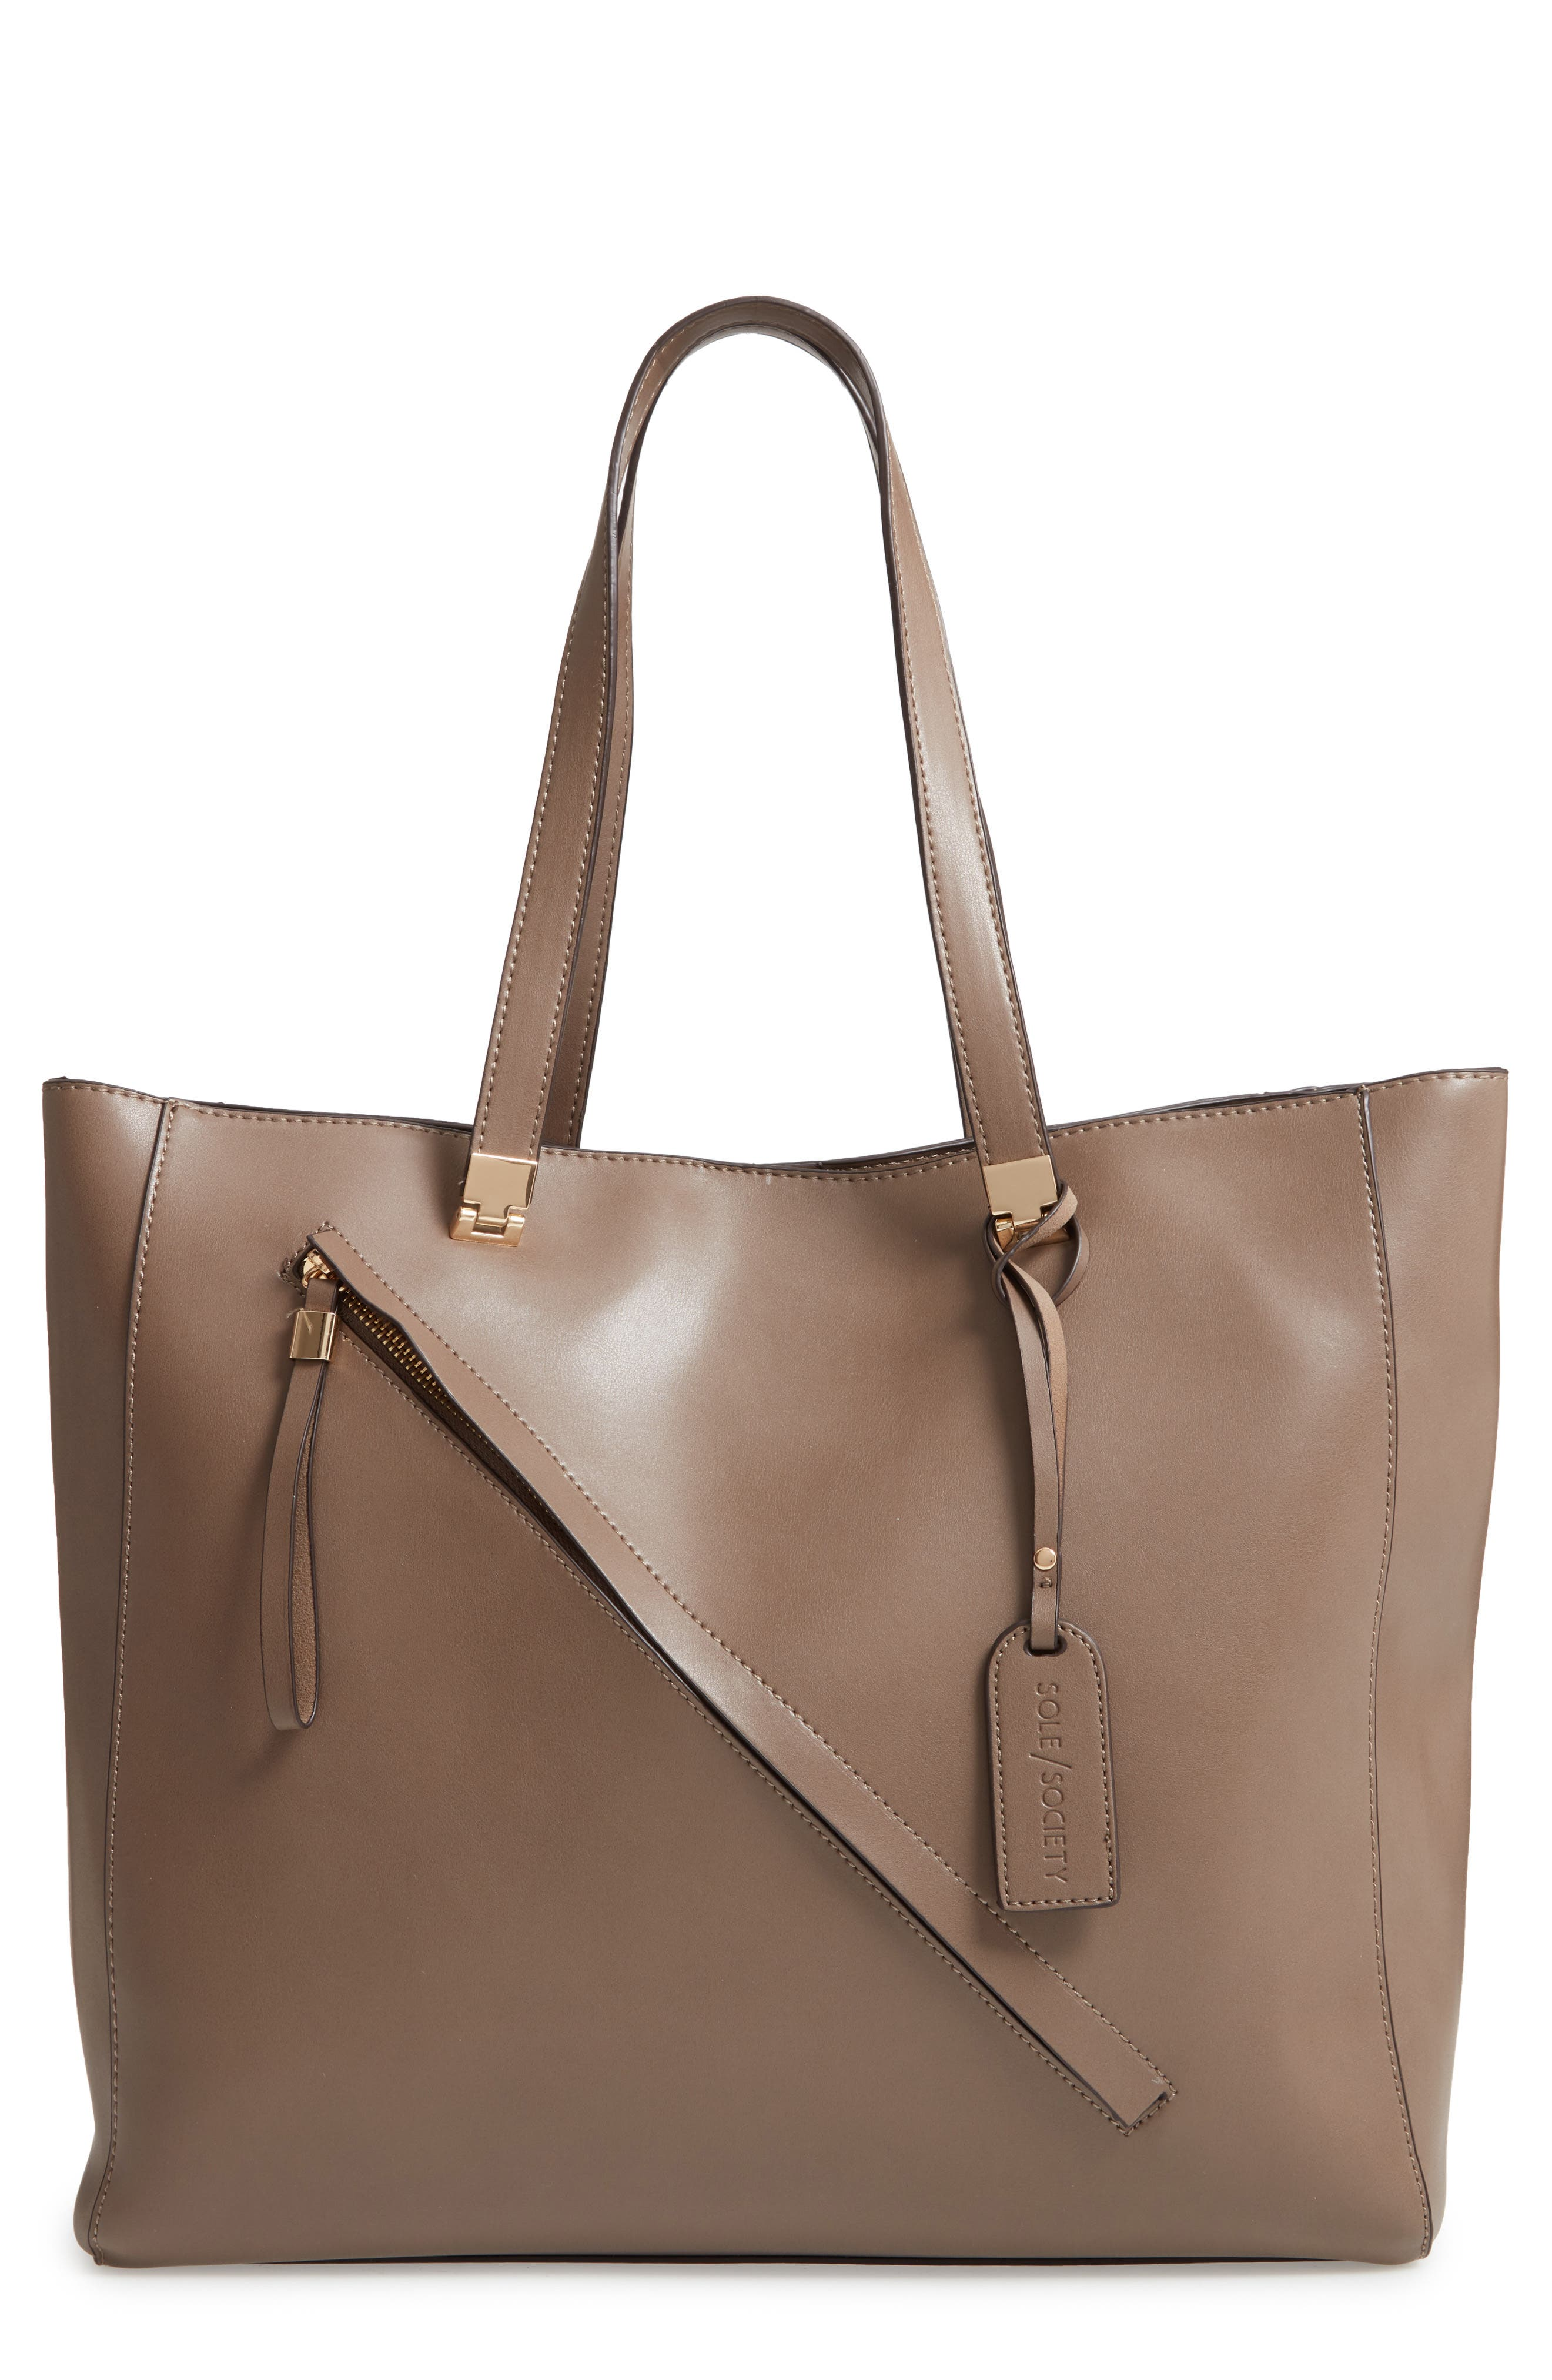 SOLE SOCIETY Nycky Faux Leather Tote, Main, color, 250